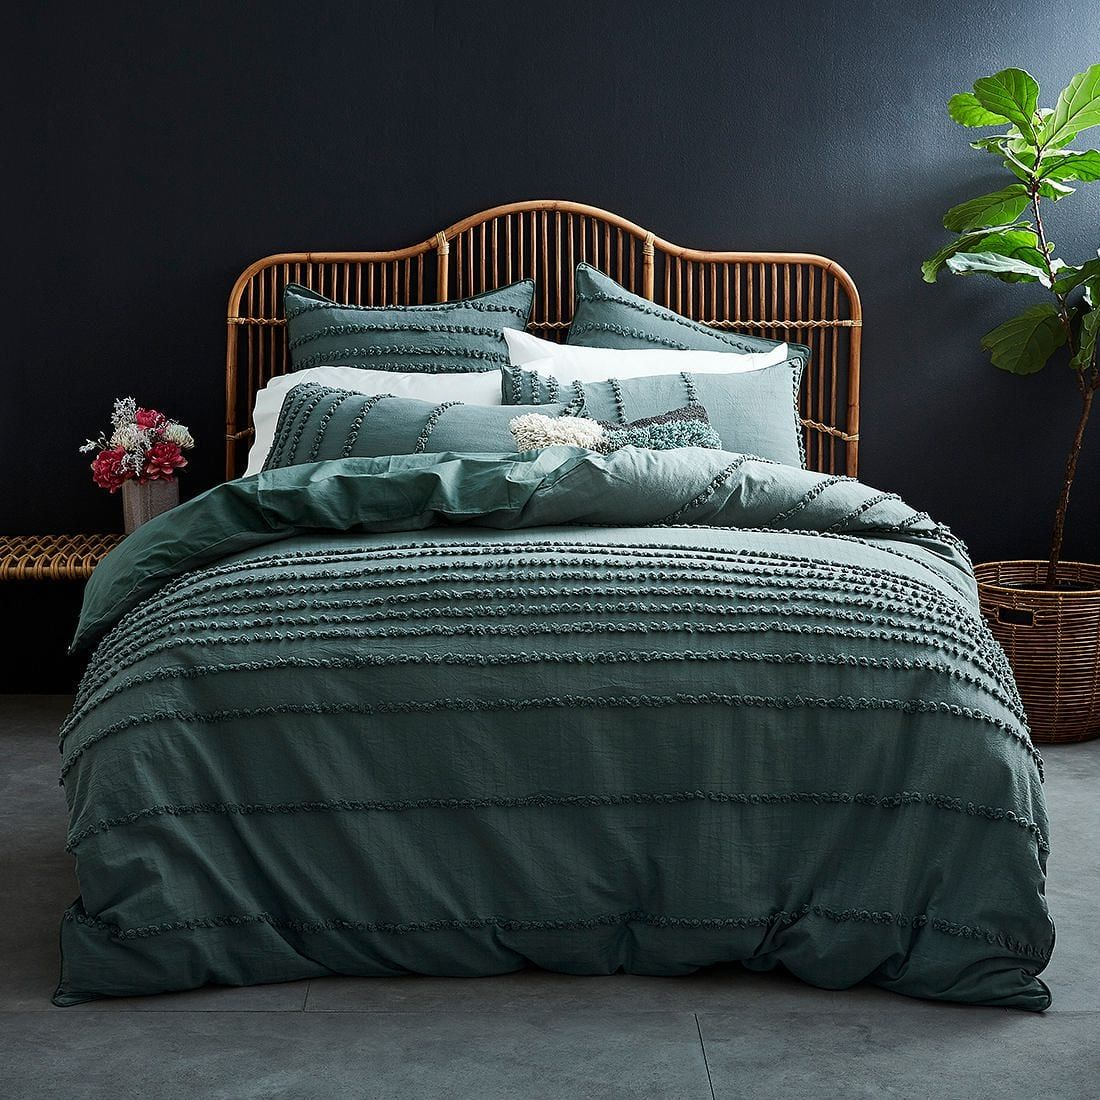 SINGLE DOUBLE QUEEN KING Crinkle Cotton Quilt Cover Set by Accessorize